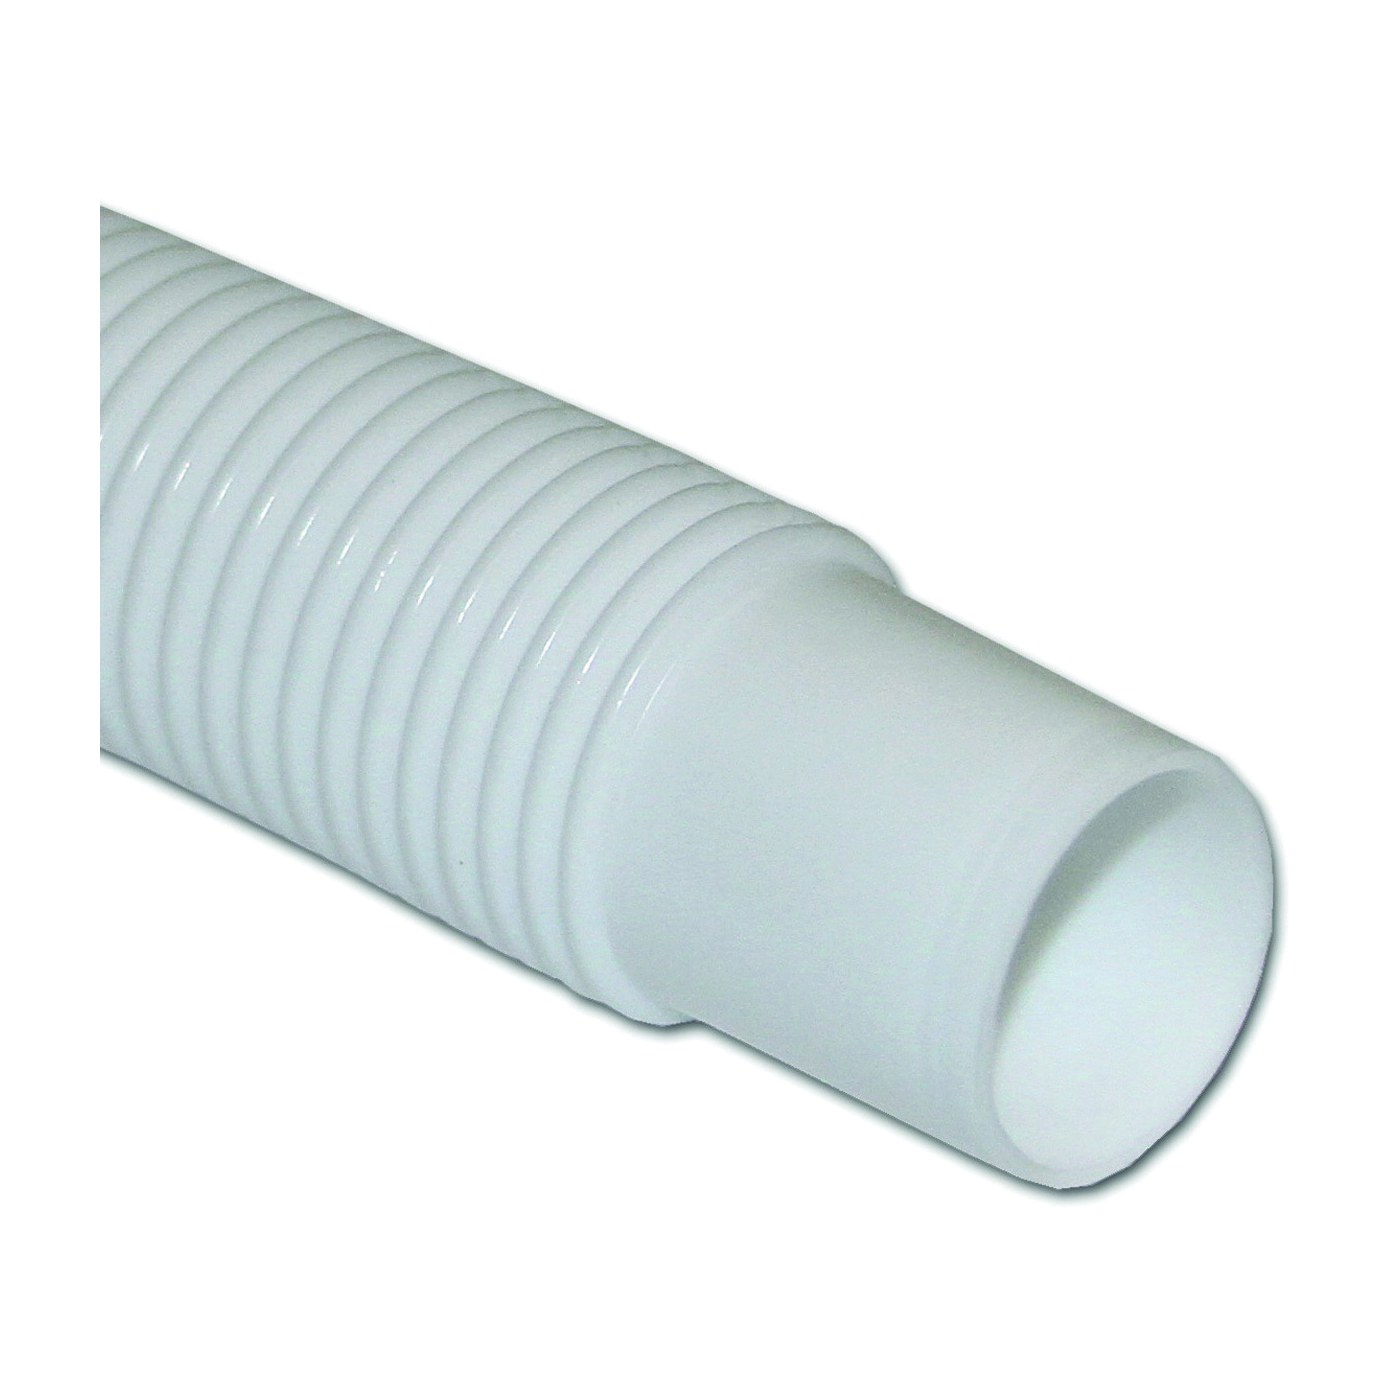 Picture of UDP T34 Series T34005002/RBBO Bilge Hose, 1-1/8 in ID, 50 ft L, Polyethylene, Milky White